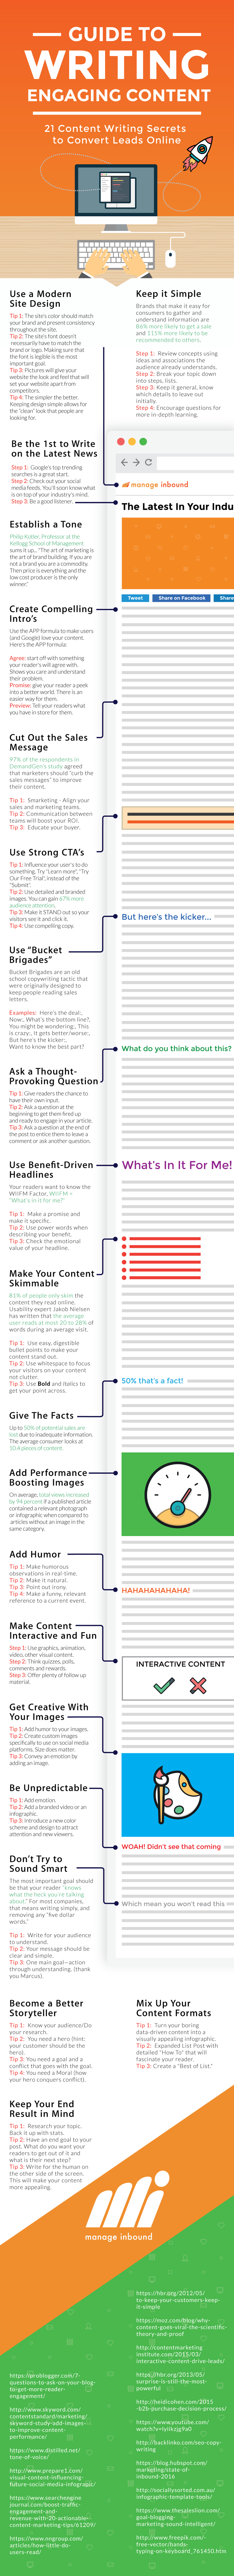 Guide to Writing Engaging Content #infographic